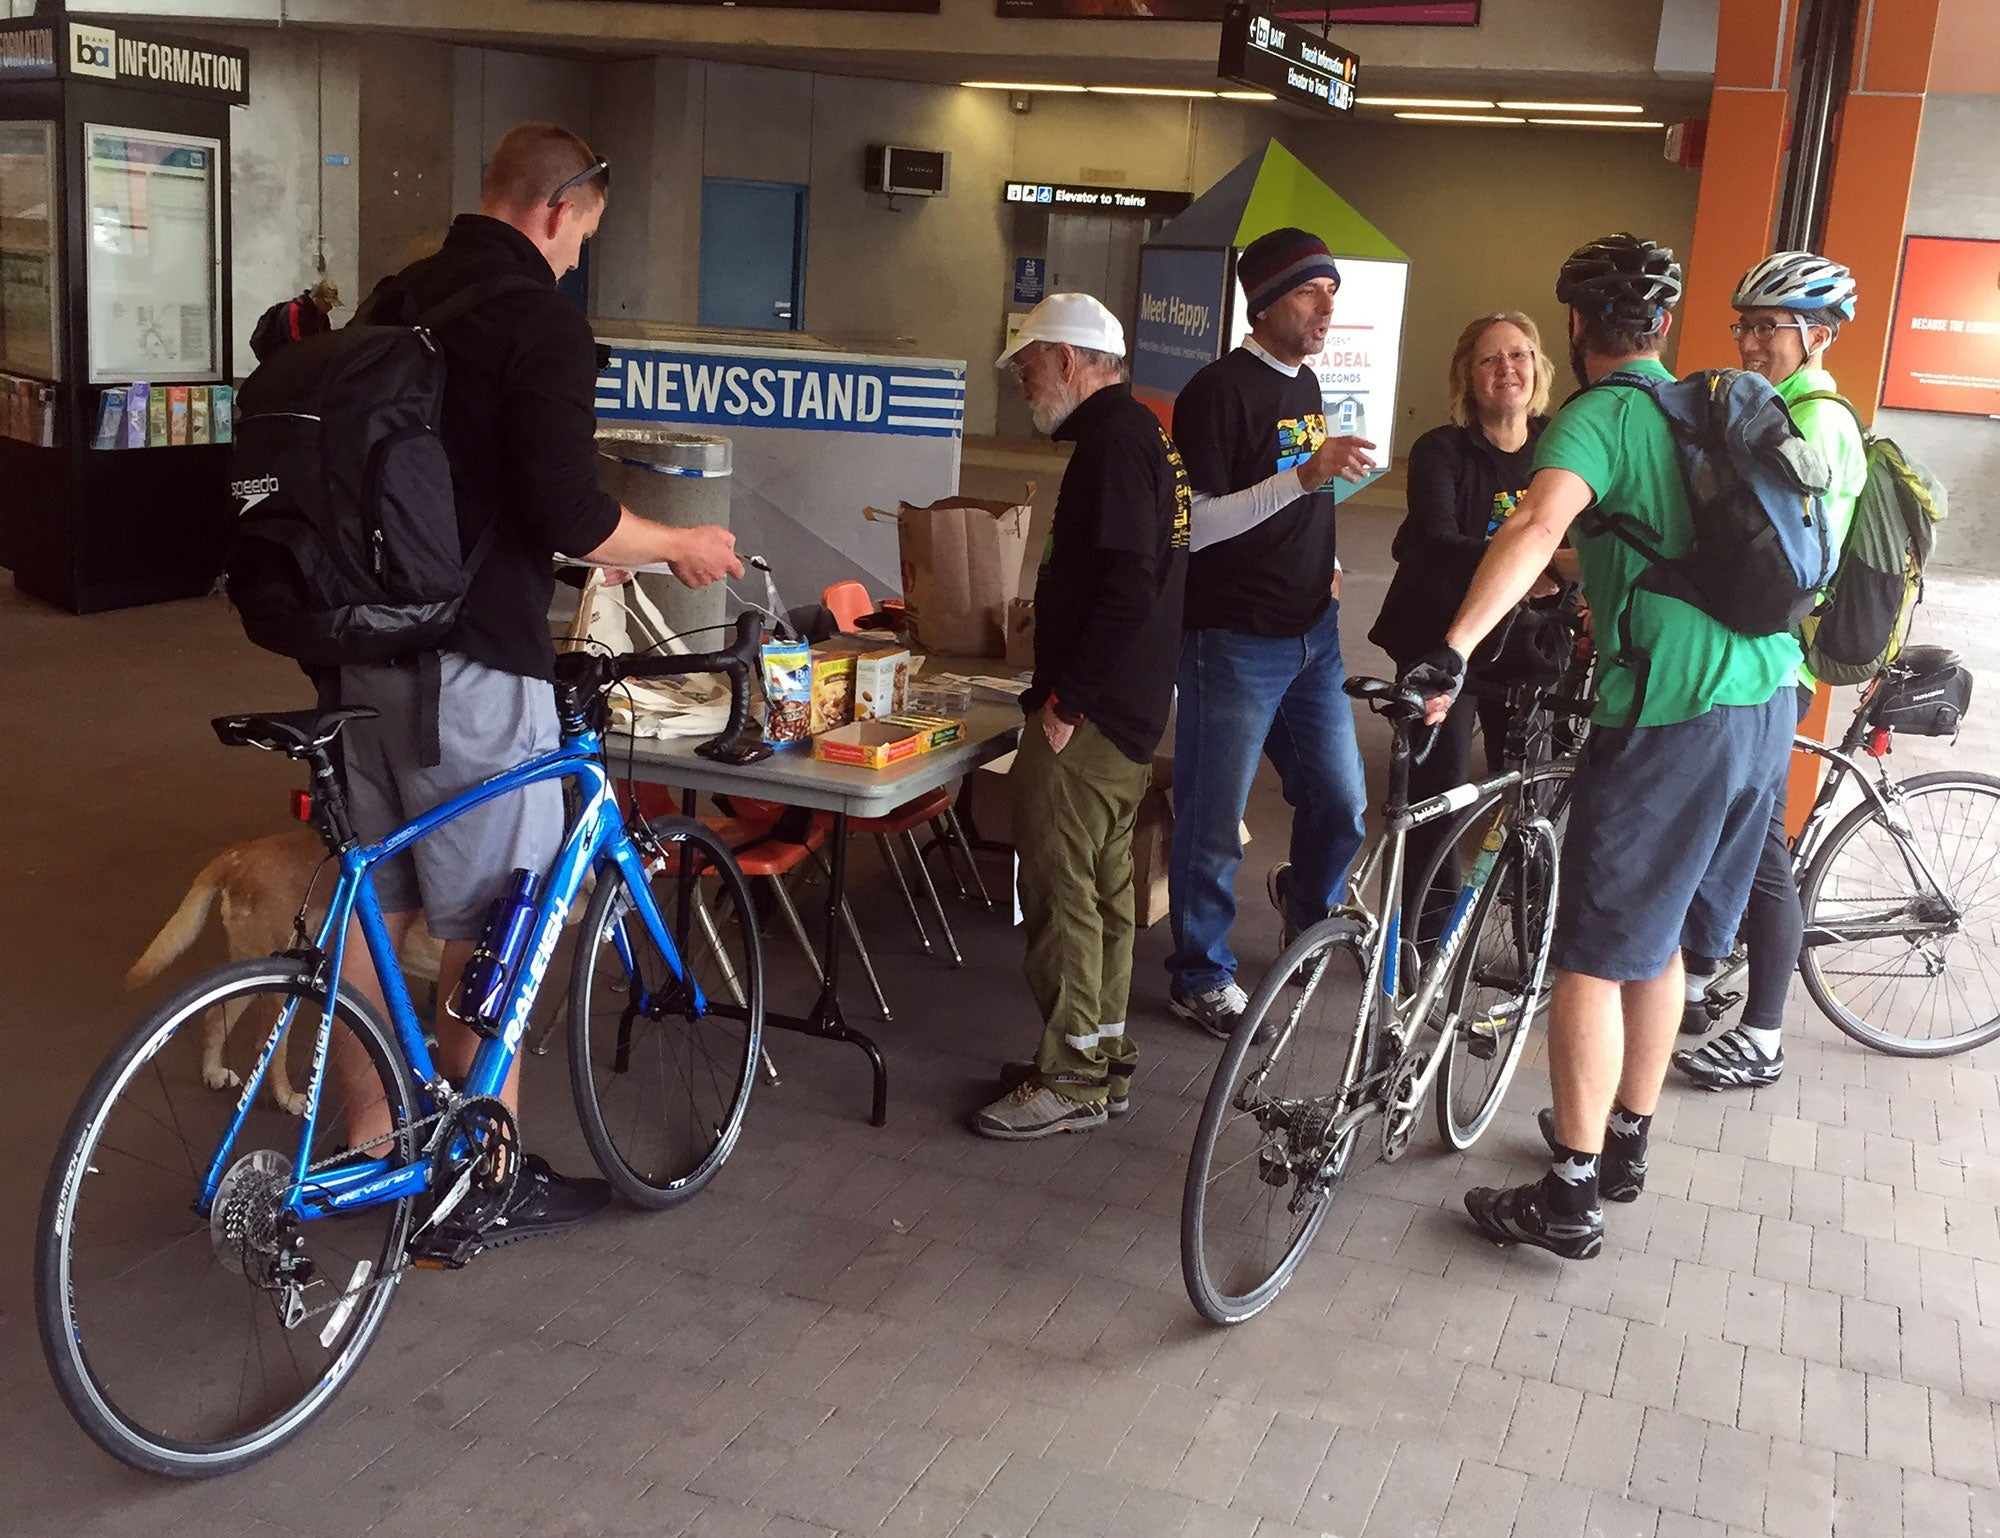 MTC Commissioner and Orinda City Councilmember Amy Rein Worth steps up for volunteer duty at the Energizer Station outside  the Orinda BART station (photo by Julie Teglovich)